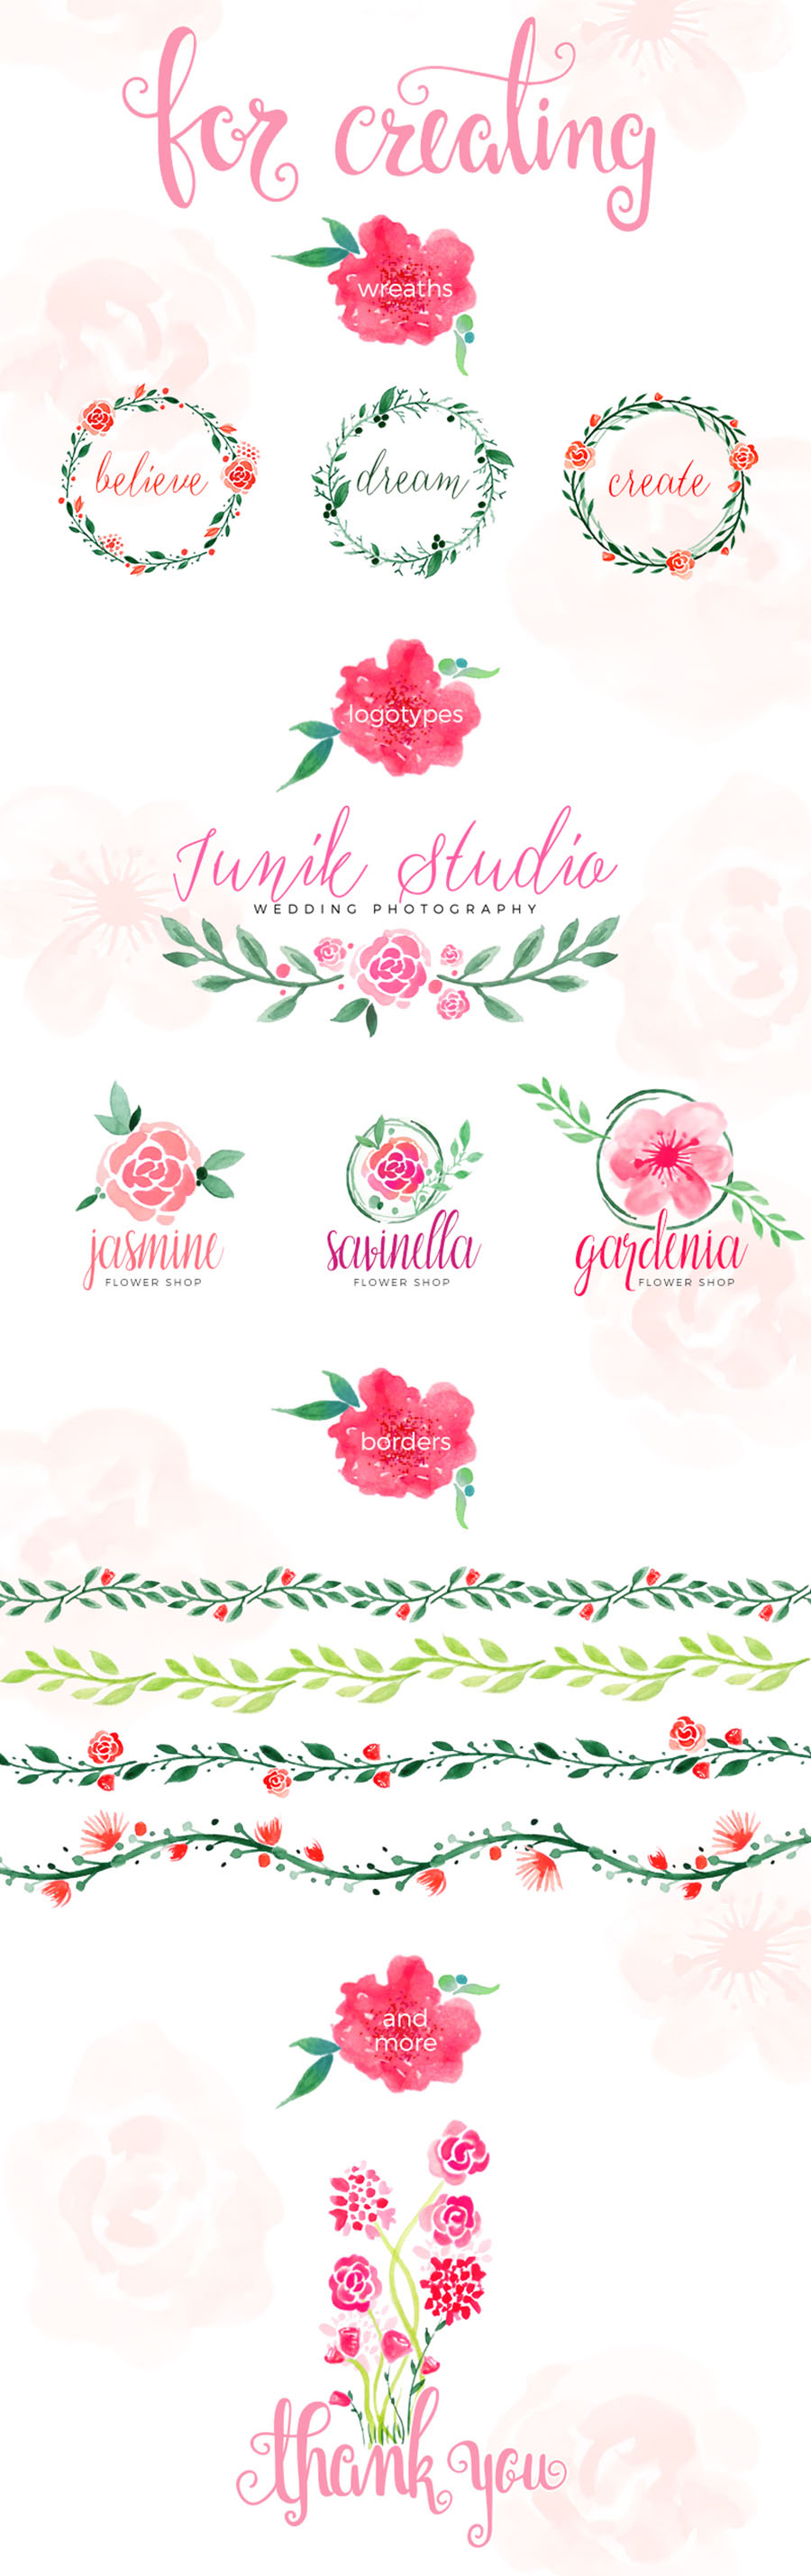 100-Free-Watercolor-Floral-Elements-2